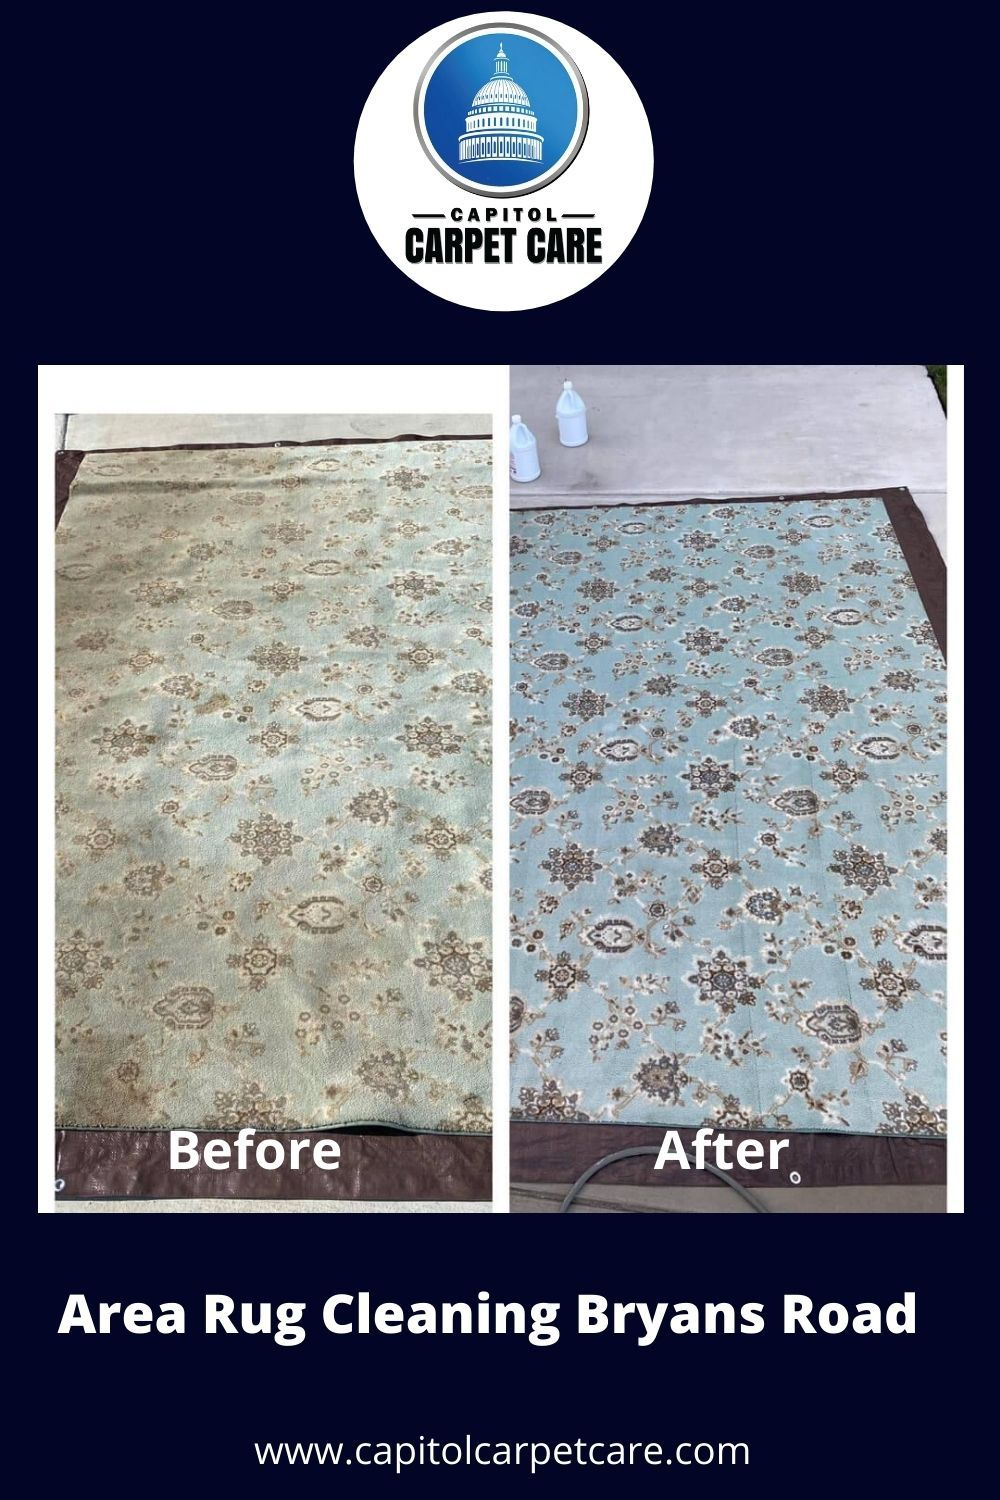 Even if your home uses hard flooring surfaces, we still offer the services you need. Green carpet cleaning is also beneficial for many area rugs, carpet runners, mats, and more.  From living rooms to bedroom rugs, synthetic materials, and natural fibers, we treat them all. Whenever you have soiled rugs and smelly mats, we can assist you the best with our area rug cleaning Bryans Road.   #rugcleaning #rugcleaners #arearugcleaningbryansroad #professionalarearugcleaning